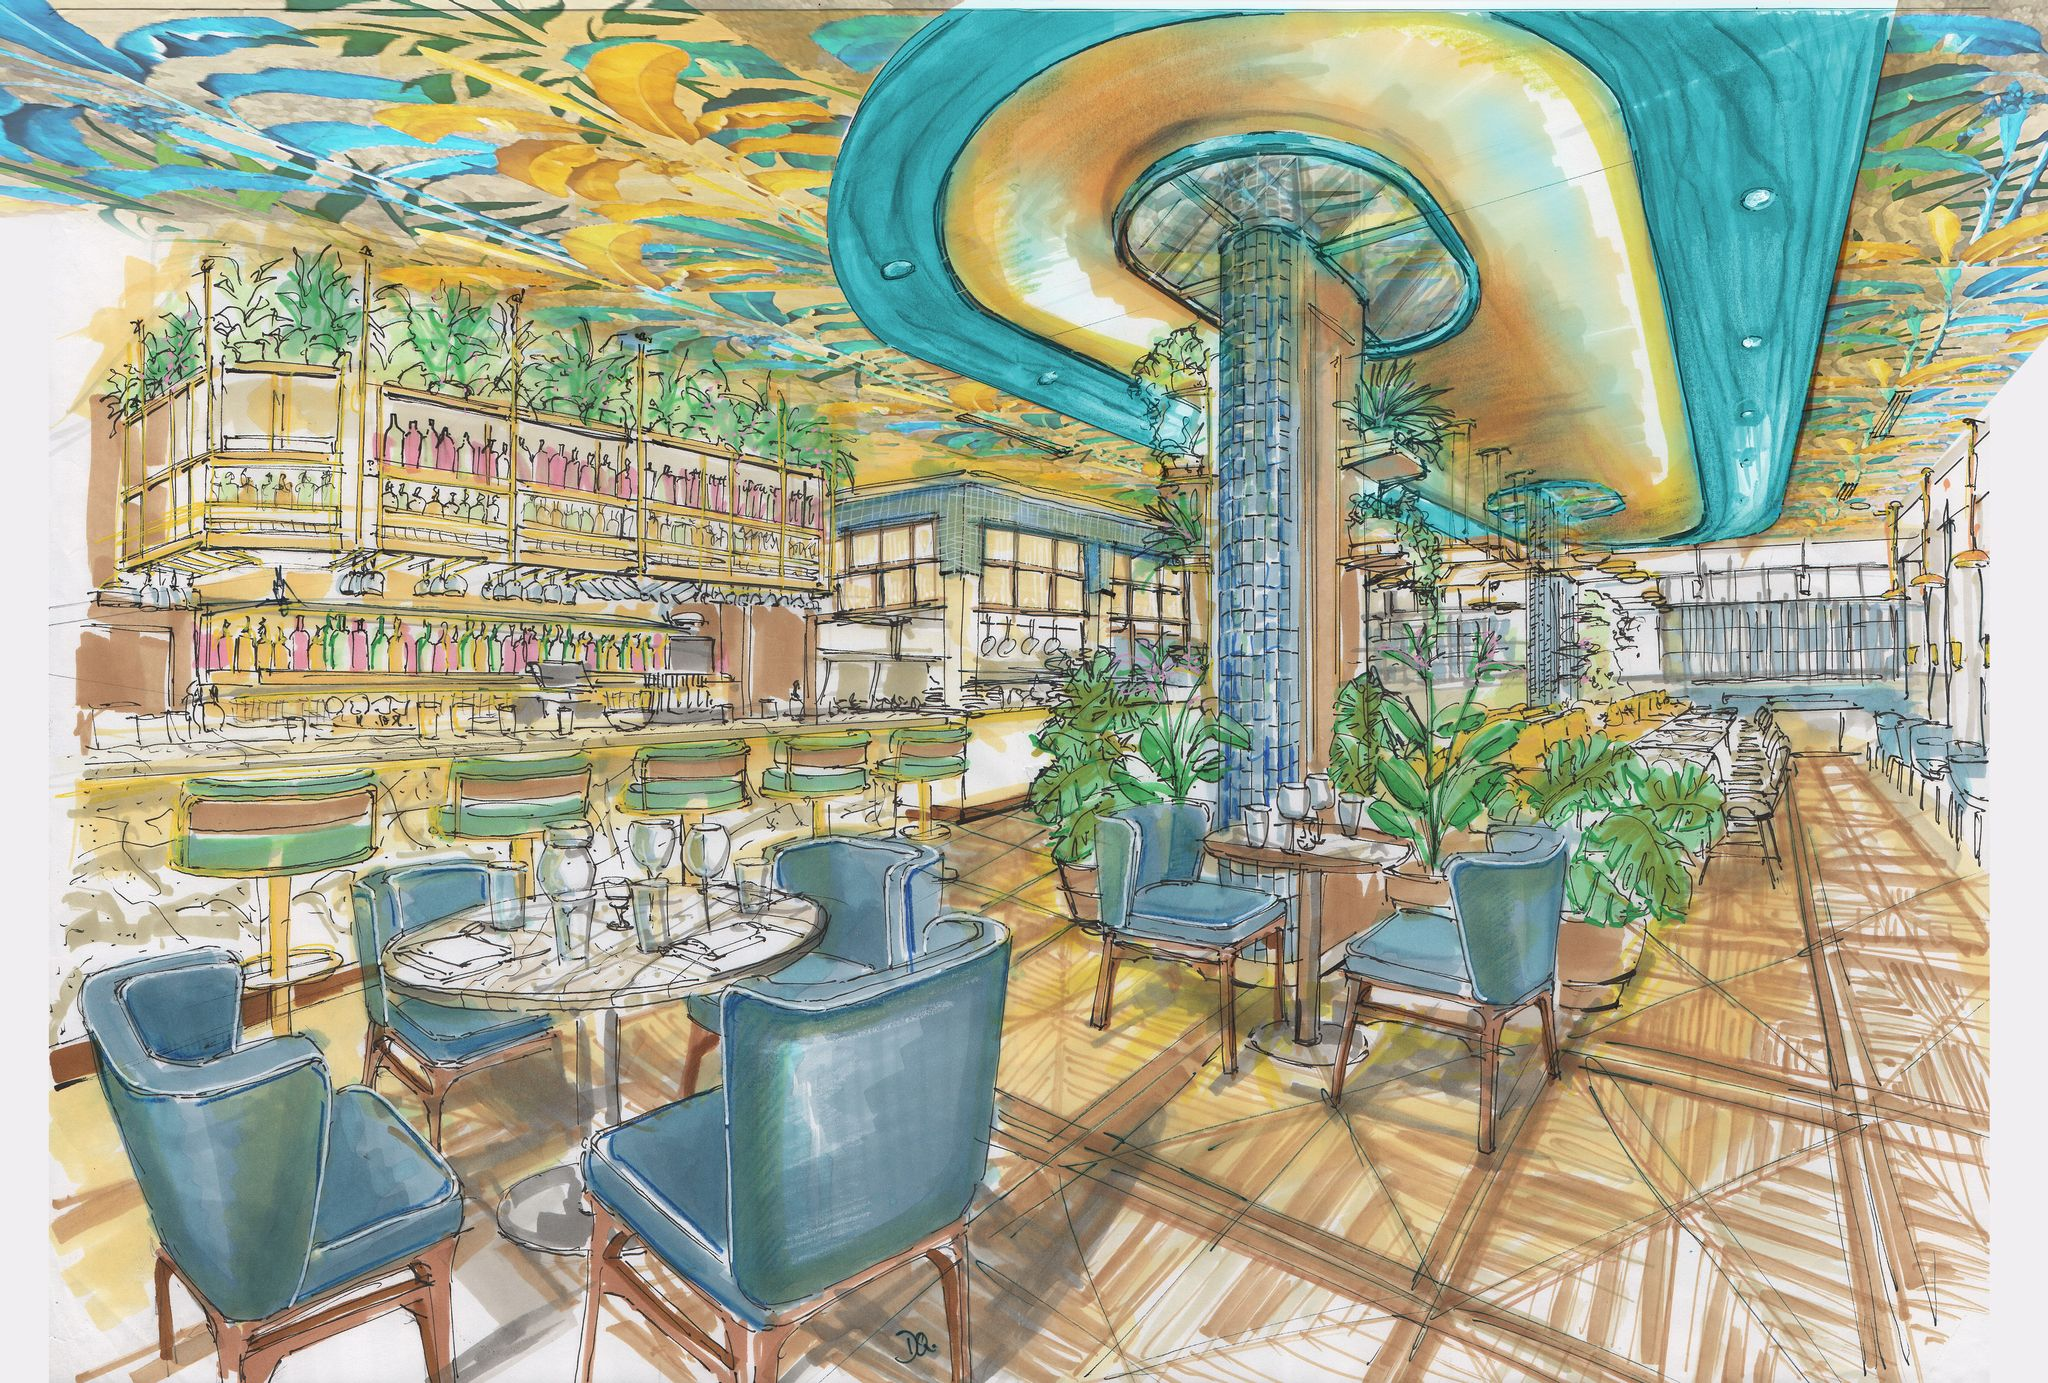 A colorful painted rendering of a leafy interior space with blue chairs and lots of yellow.